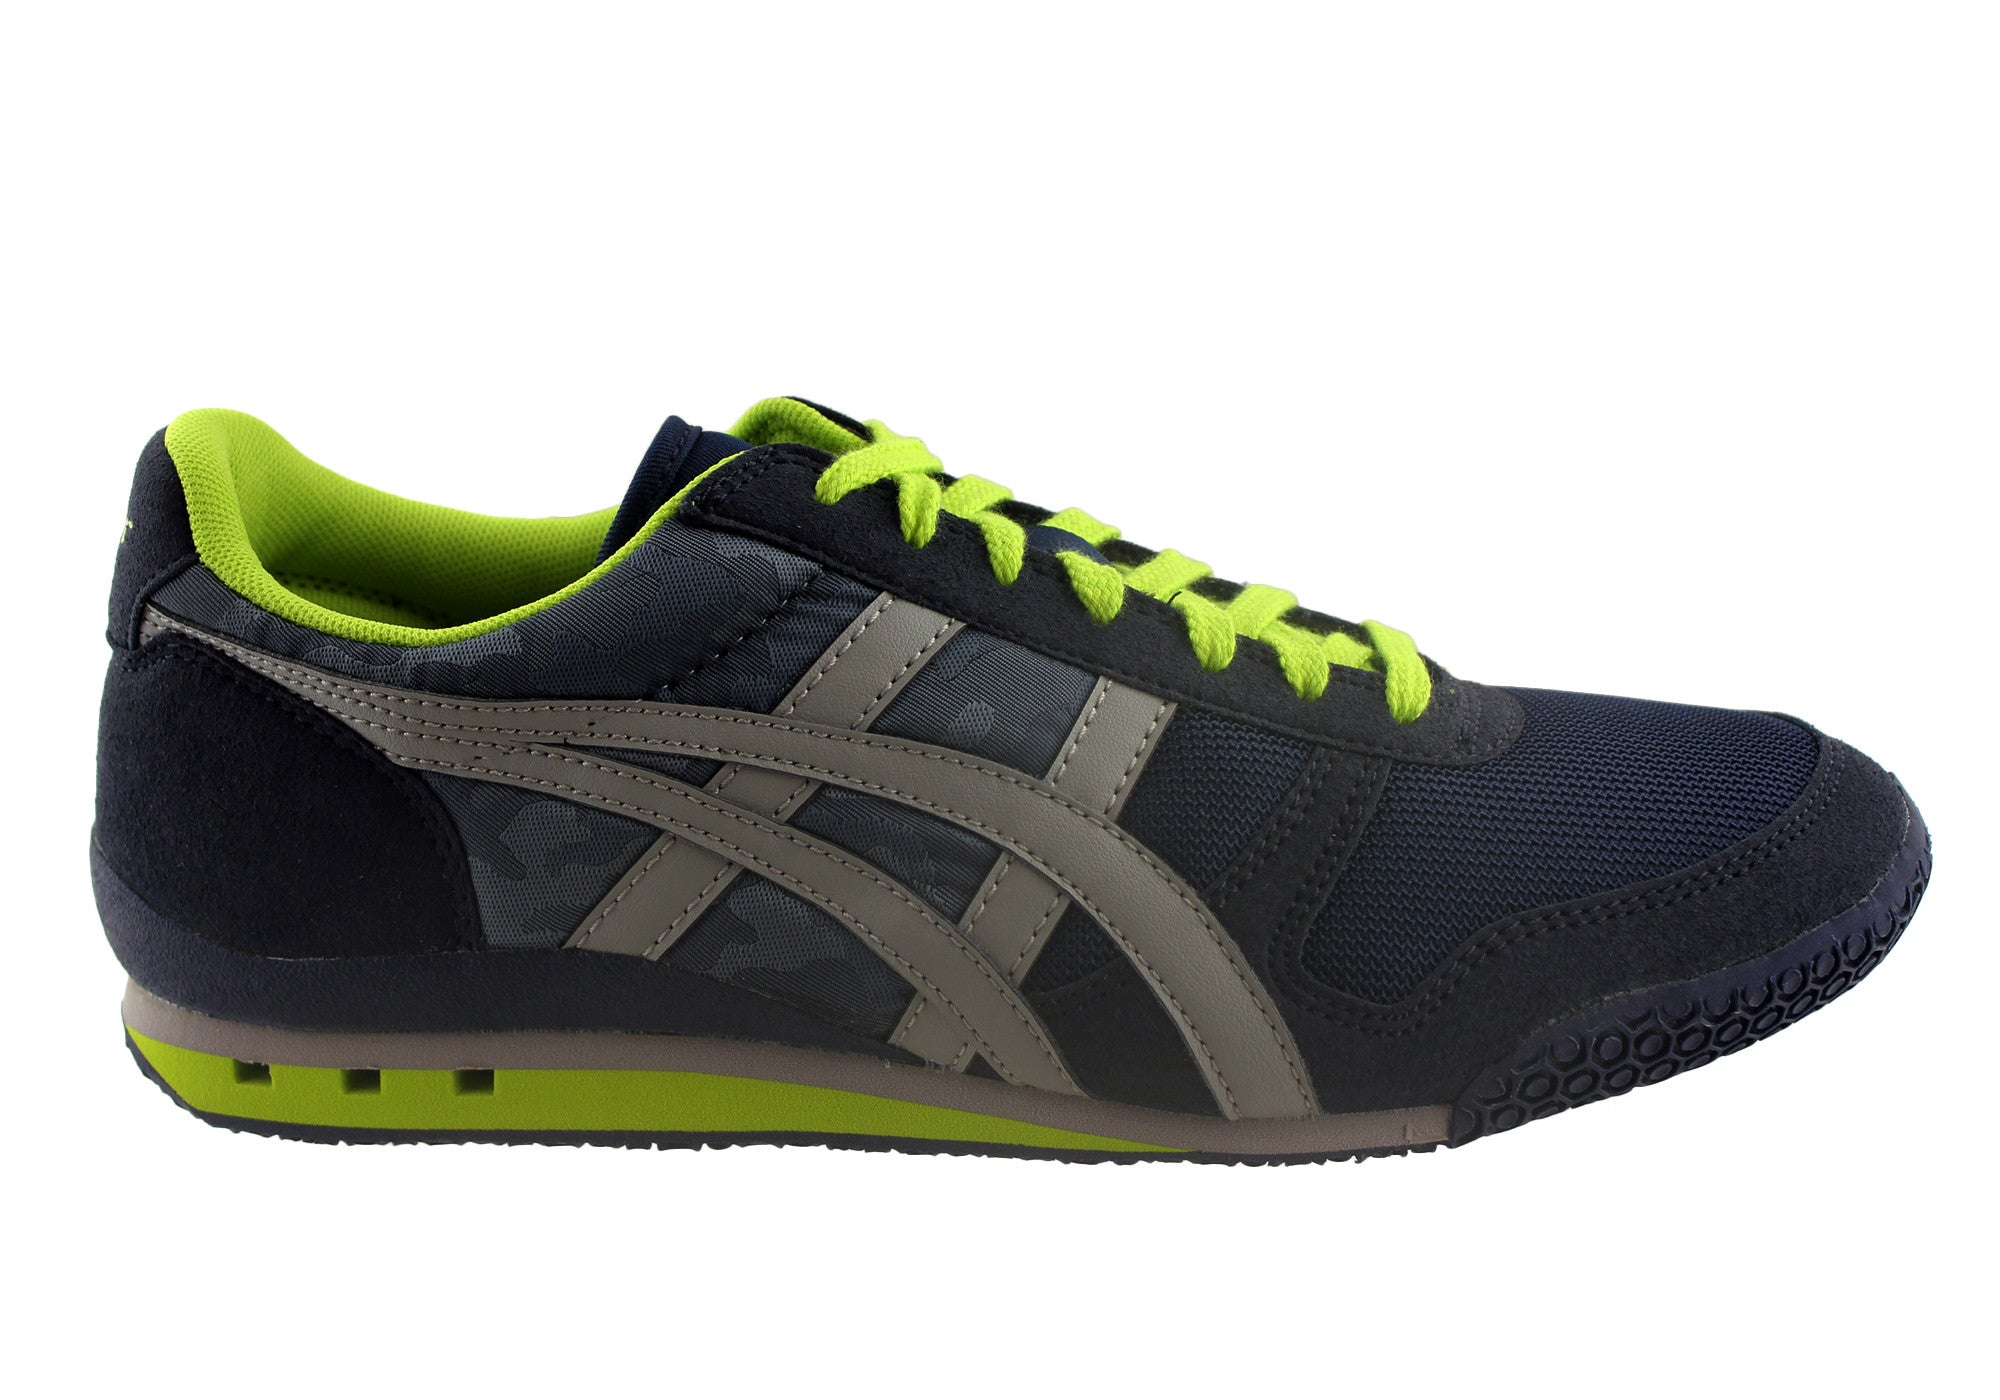 promo code 5e040 2ac02 Onitsuka Tiger Ultimate 81 Mens Lace Up Casual Shoes